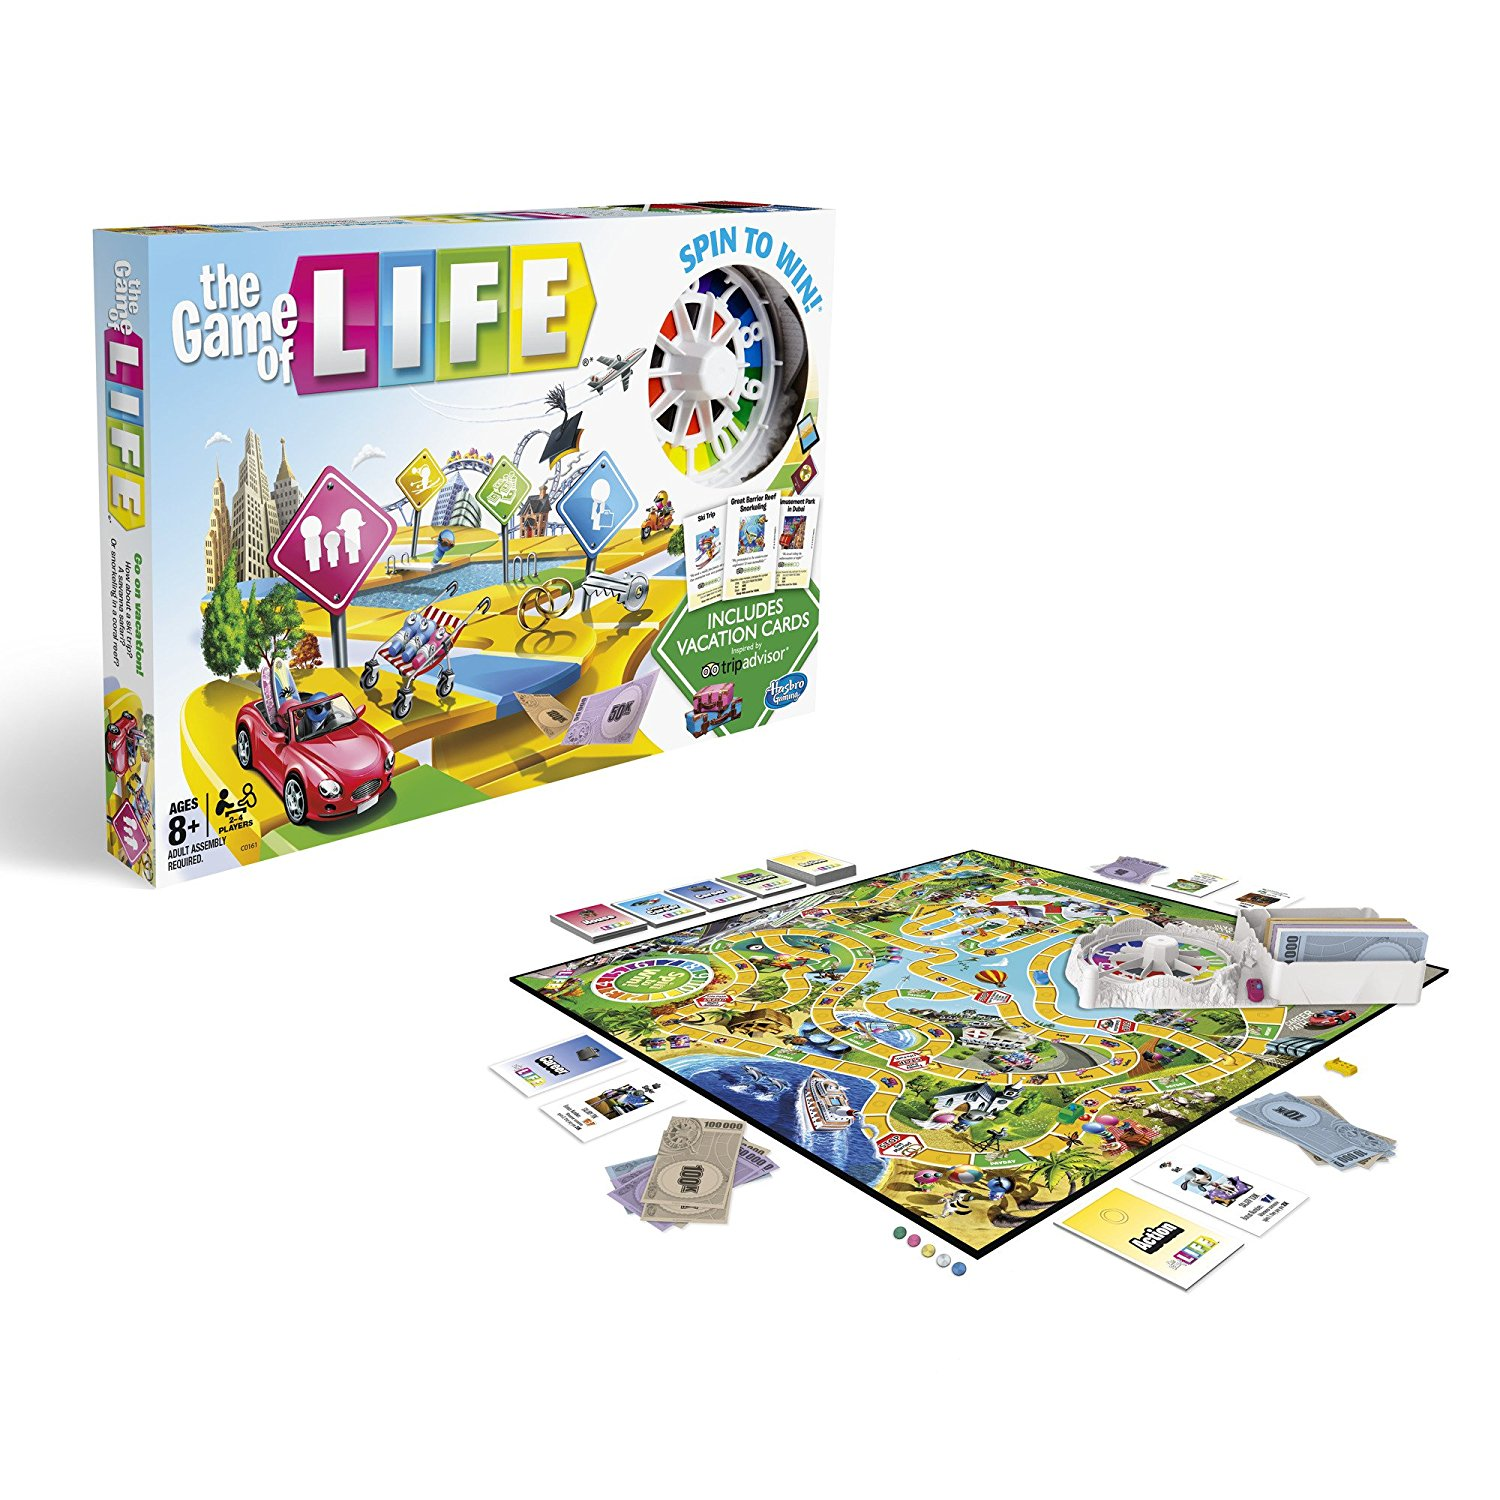 The Game of Life: TripAdvisor Edition, The Game of Life game is full of surprises By... by